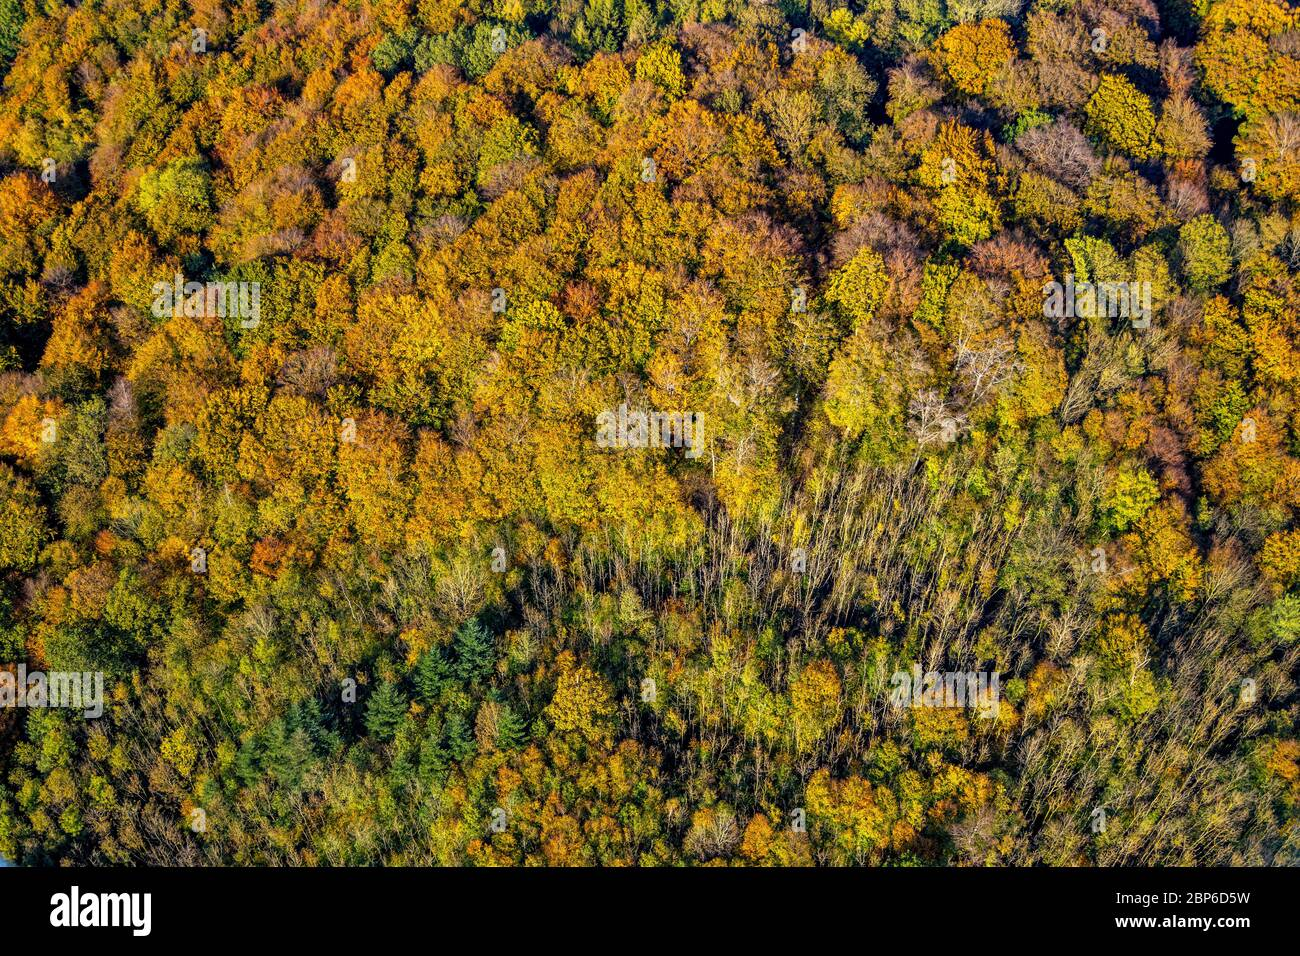 Aerial view, autumn forest in bright colors, near Habbel Quarry, Arnsberg, Sauerland, North Rhine-Westphalia, Germany Stock Photo